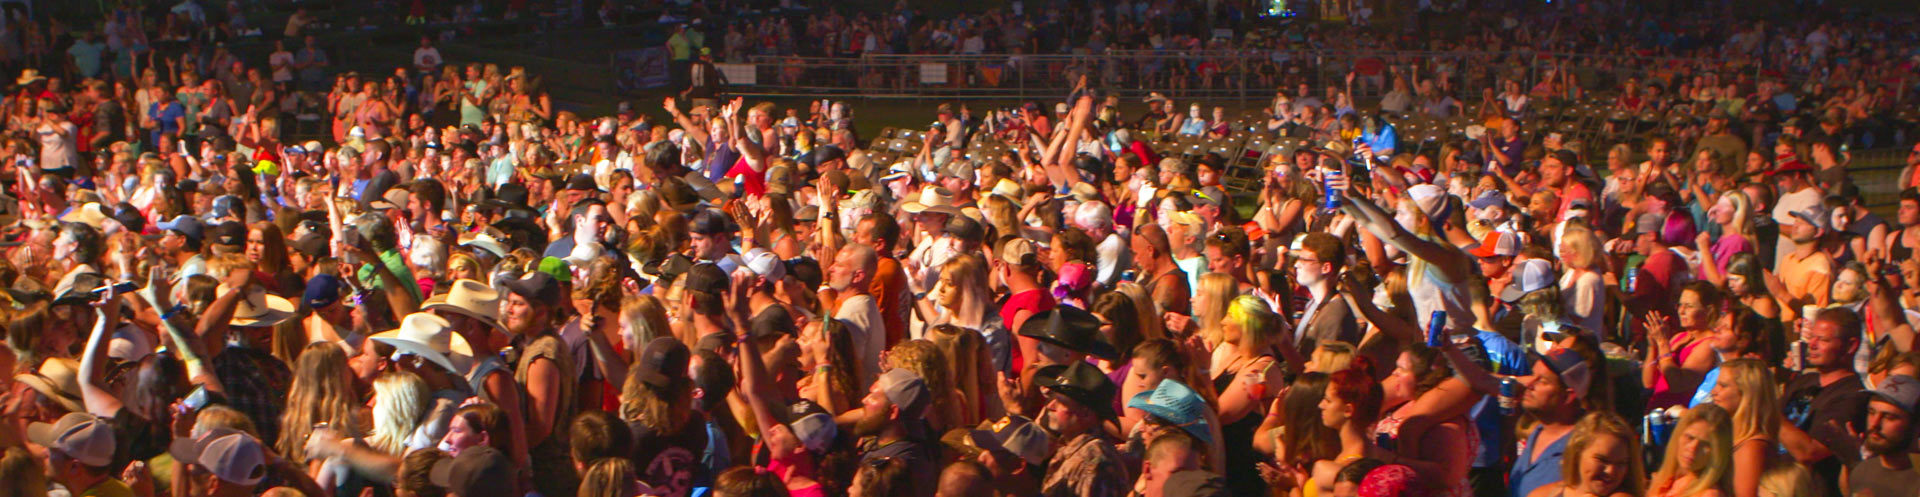 crowd attending suwannee music fest